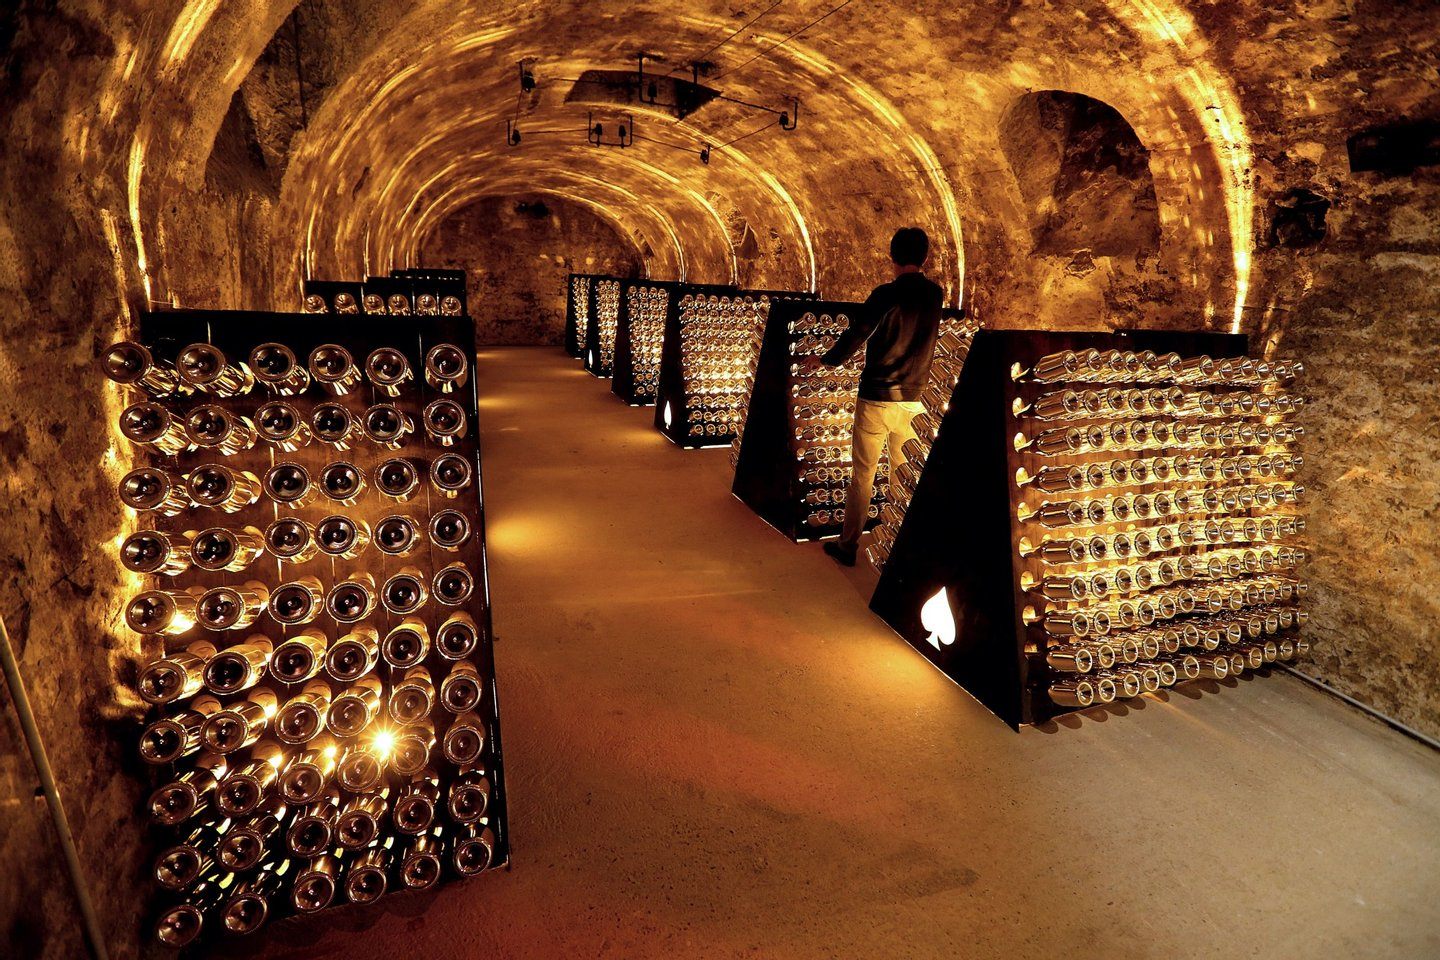 "Bottles of ""Armand de Brignac"" Champagne are seen in the cellars of the Cattier champagne family house on November 6, 2014 in Chigny-les-Roses, south of Reims, northeastern France. Hip-hop mogul Jay Z has shown his fondness for Armand de Brignac Champagne for years and on November 5, 2014 he bought the brand. Sovereign Brands, a New York-based wine and spirits company which owned the label, said it was selling it to Jay Z for an undisclosed amount. AFP PHOTO / FRANCOIS NASCIMBENI (Photo credit should read FRANCOIS NASCIMBENI/AFP/Getty Images)"